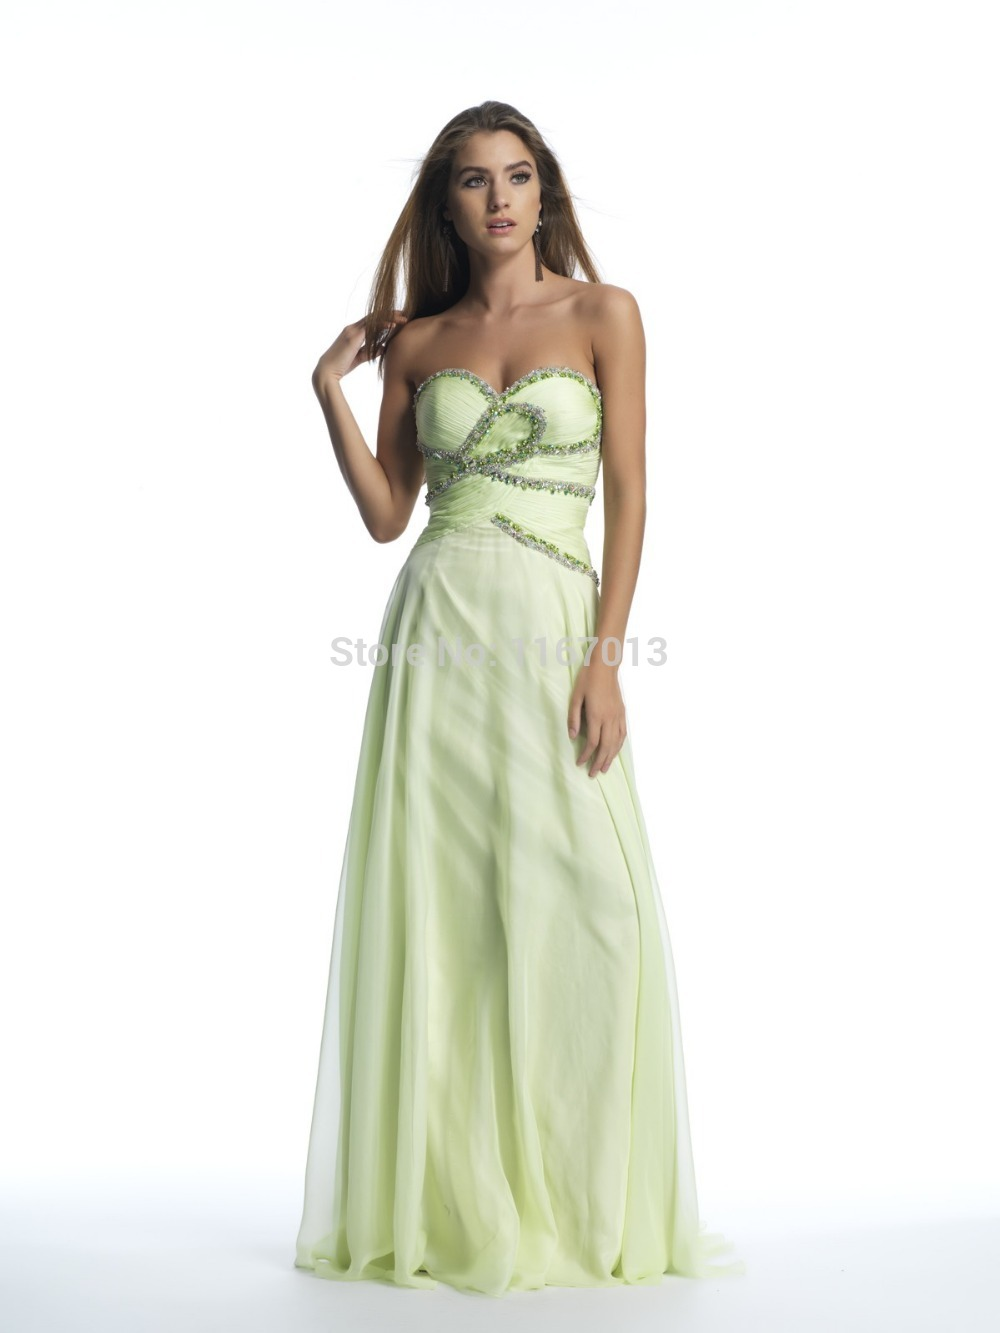 Prom & Homecoming Dresses, Evening Gowns & Tuxedos